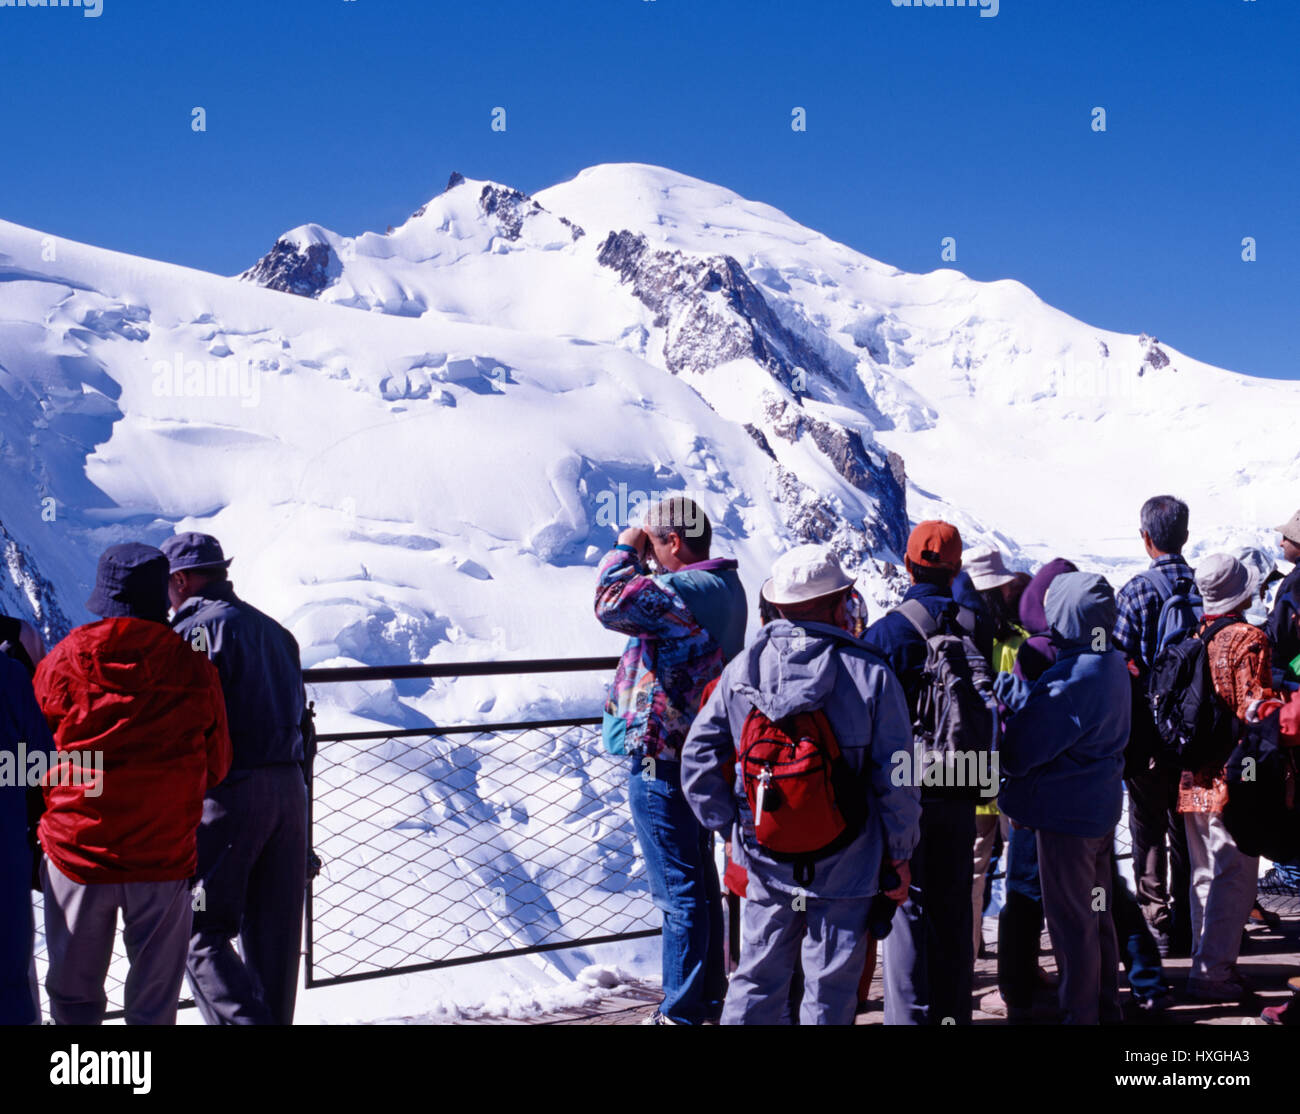 Tourists viewing Mont Blanc from Aguile de Midi, Chamonix, France - Stock Image